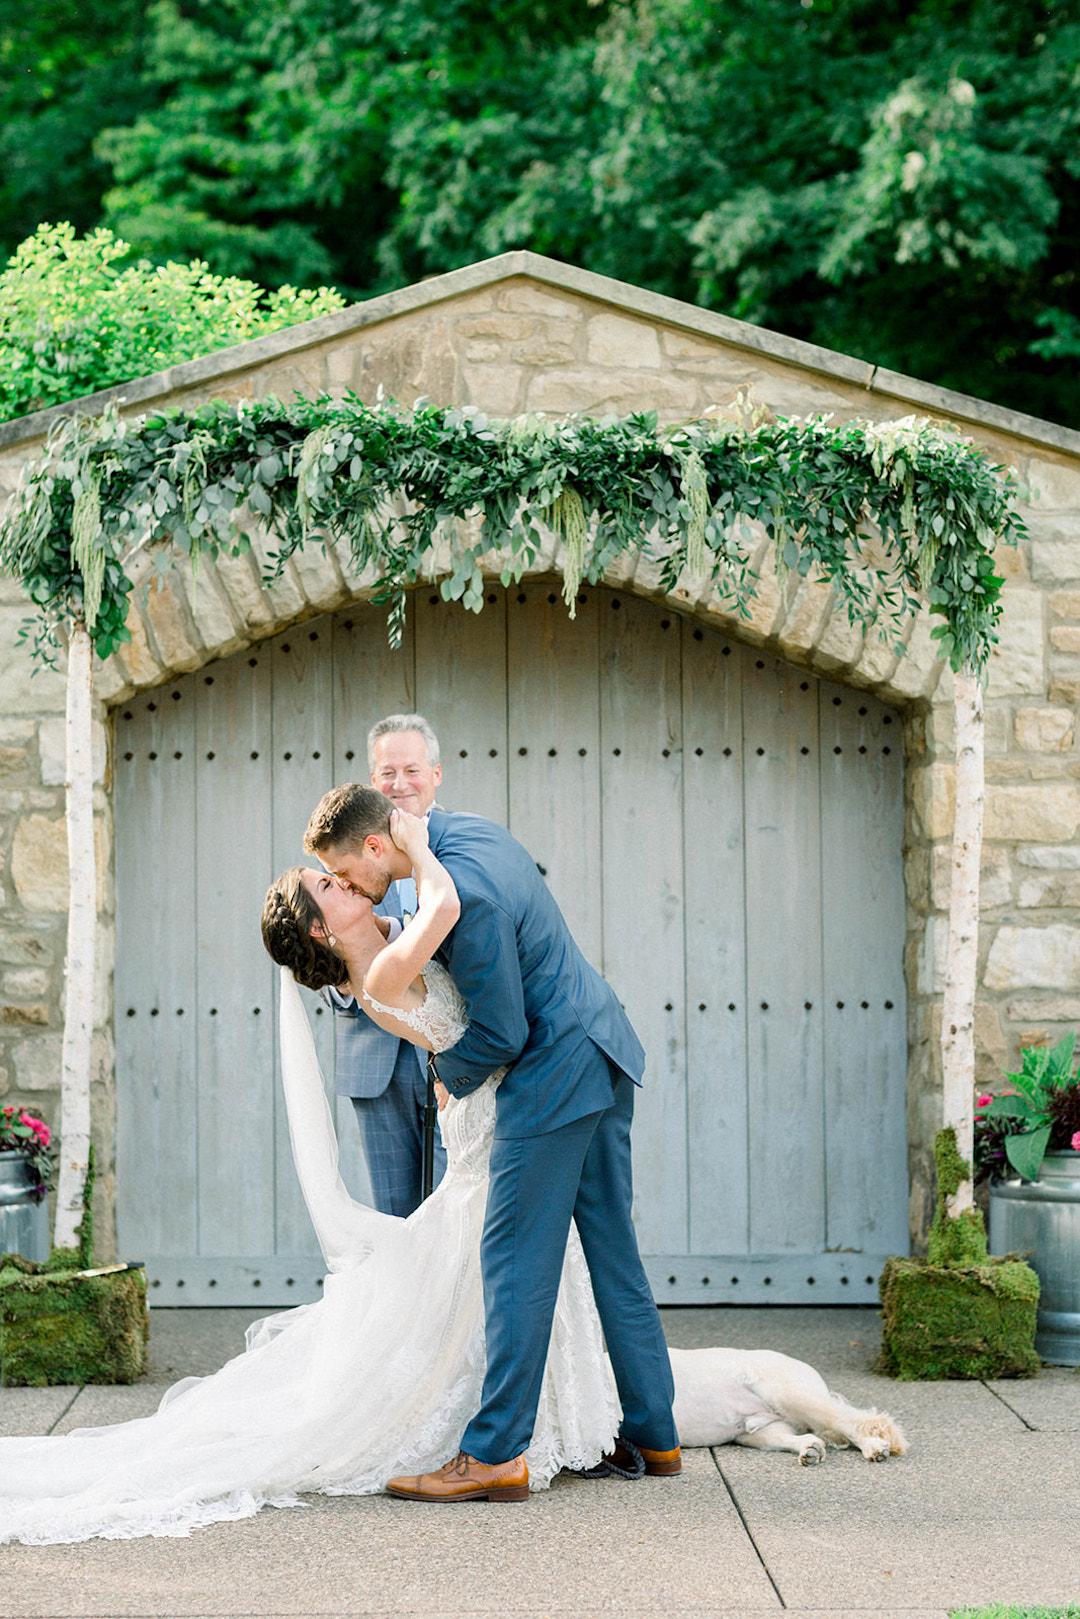 Outdoor ceremony arch idea: Sunset wedding photos:Pittsburgh Botanic Garden wedding planned by Exhale Events. See more wedding inspiration at exhale-events.com!